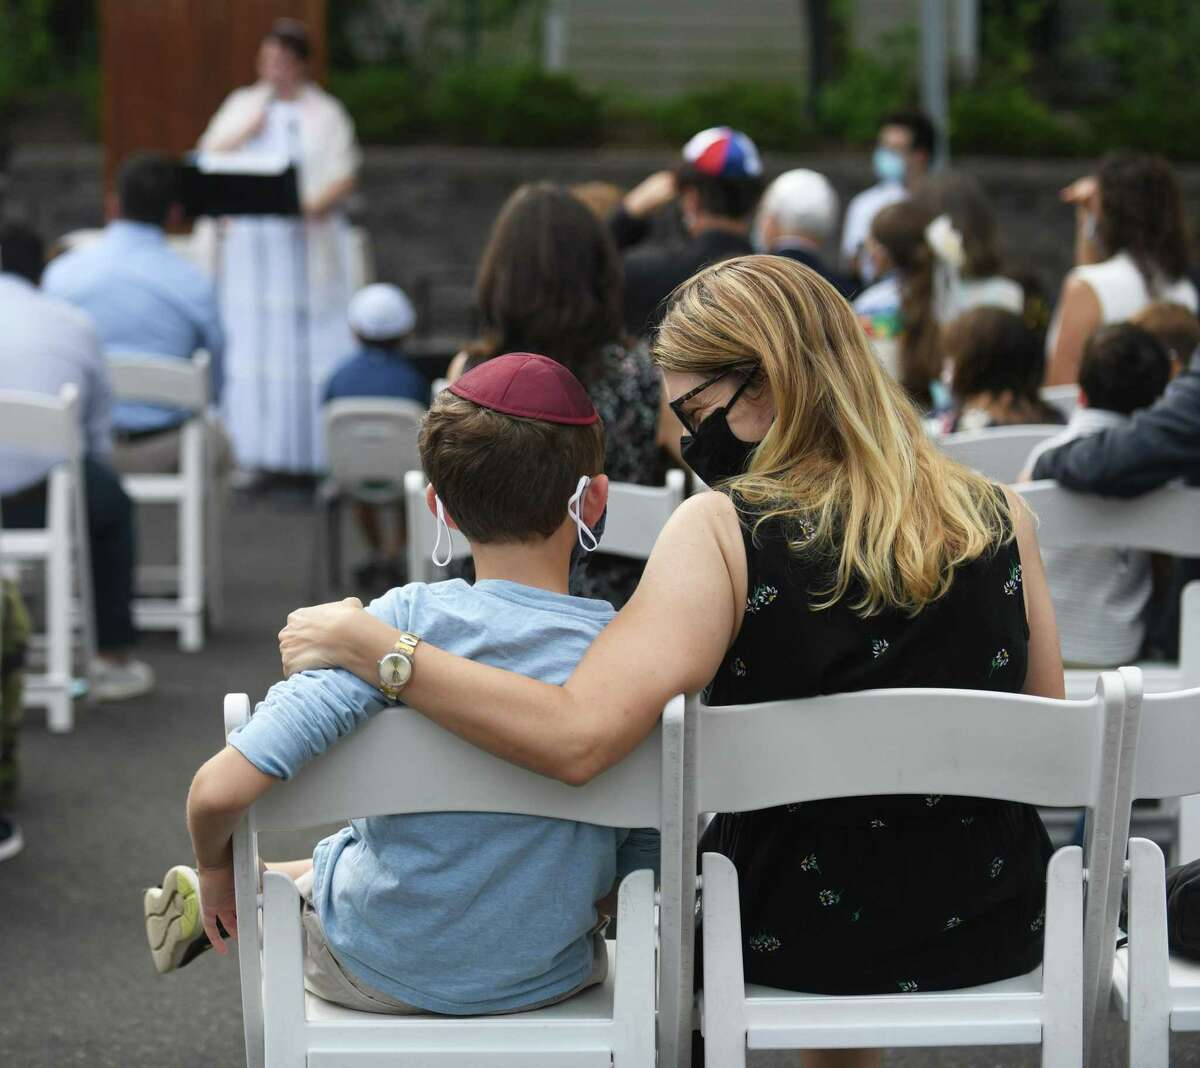 Greenwich's Karyn Schmeidler and her son, Micah, 8, attend the Yom Kippur Family Service at Greenwich Reform Synagogue in Greenwich, Conn. Thursday, Sept. 16, 2021. Congregants celebrated Yom Kippur, the Jewish day of atonement, with a variety of readings and songs.